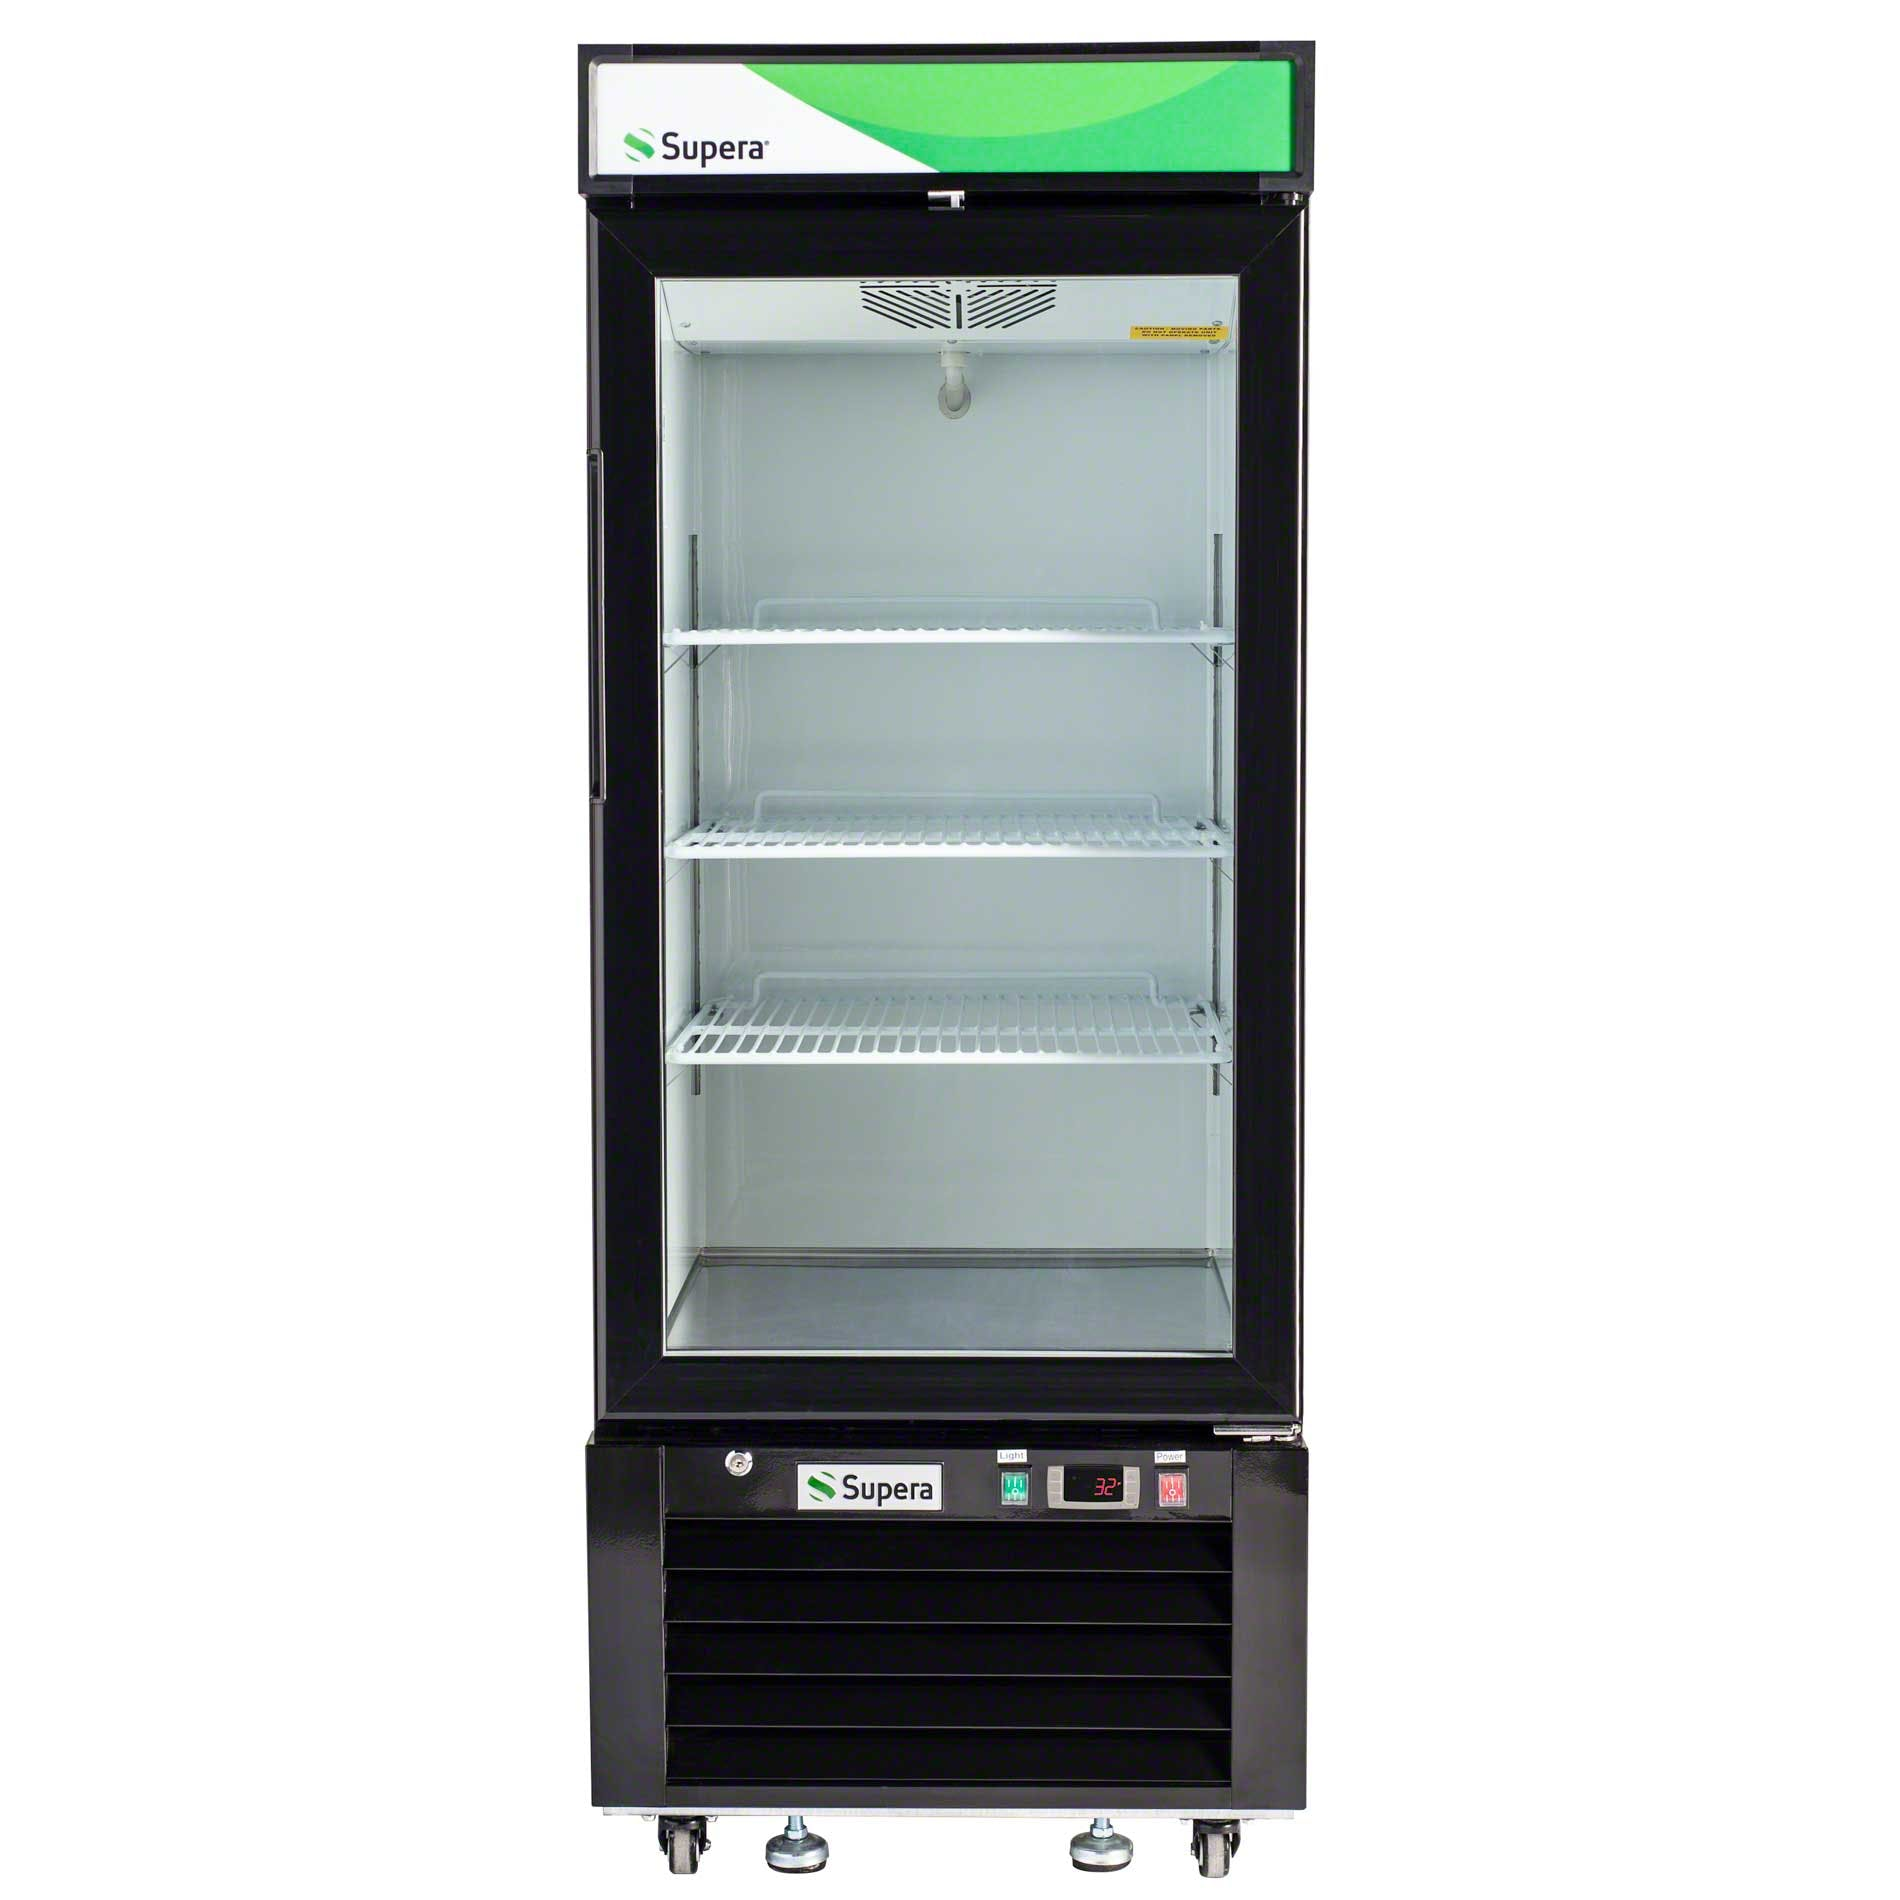 "Supera - G1M-12-B-1 25"" Glass Door Merchandiser - Black Commercial refrigerator sold by Food Service Warehouse"